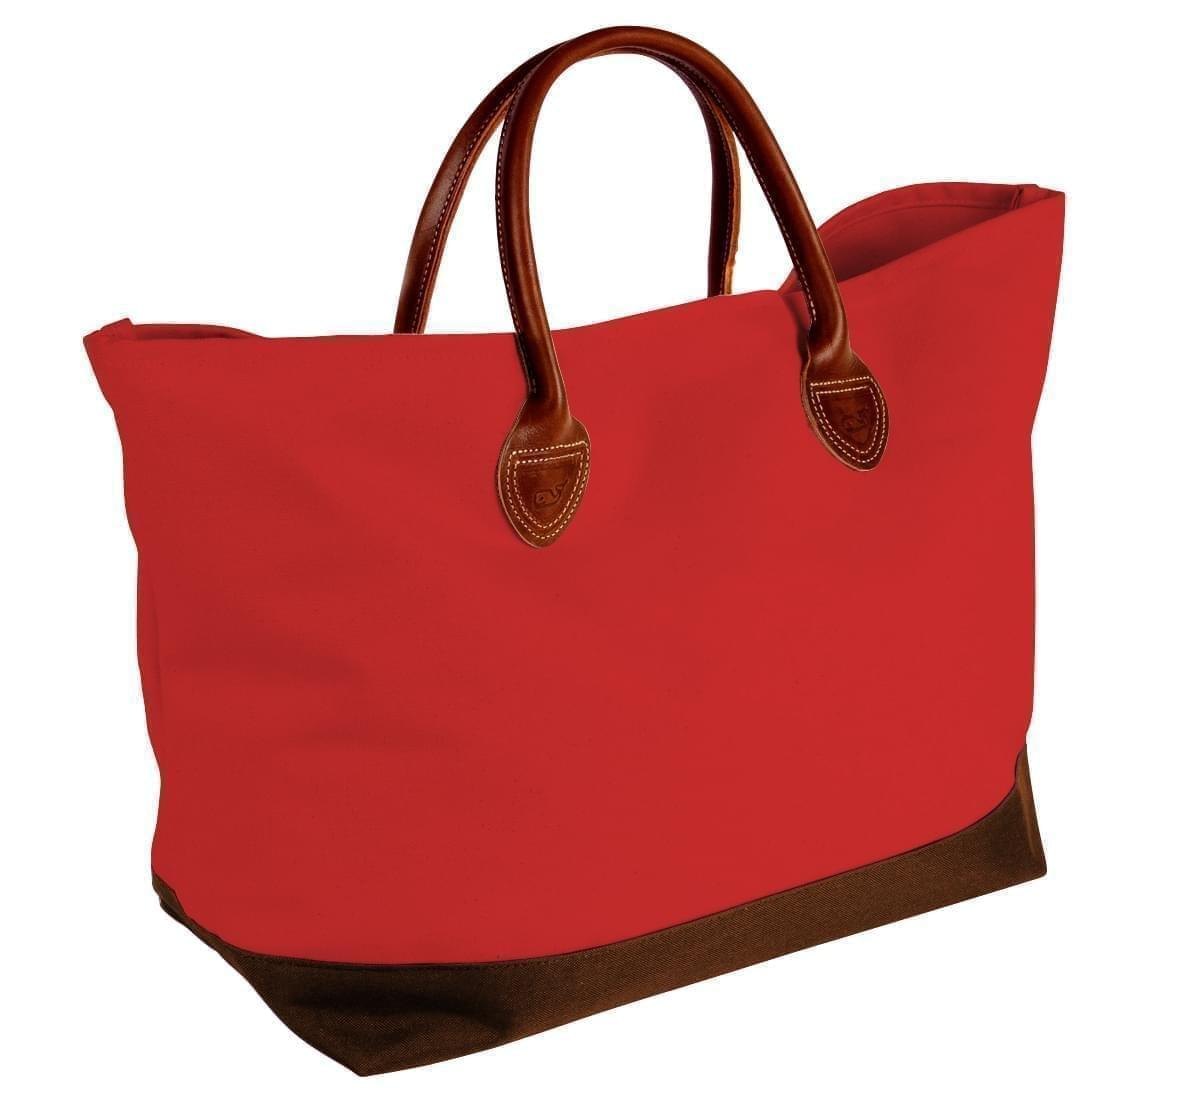 USA Made Canvas Leather Handle Totes, Red-Brown, 10899-DE9